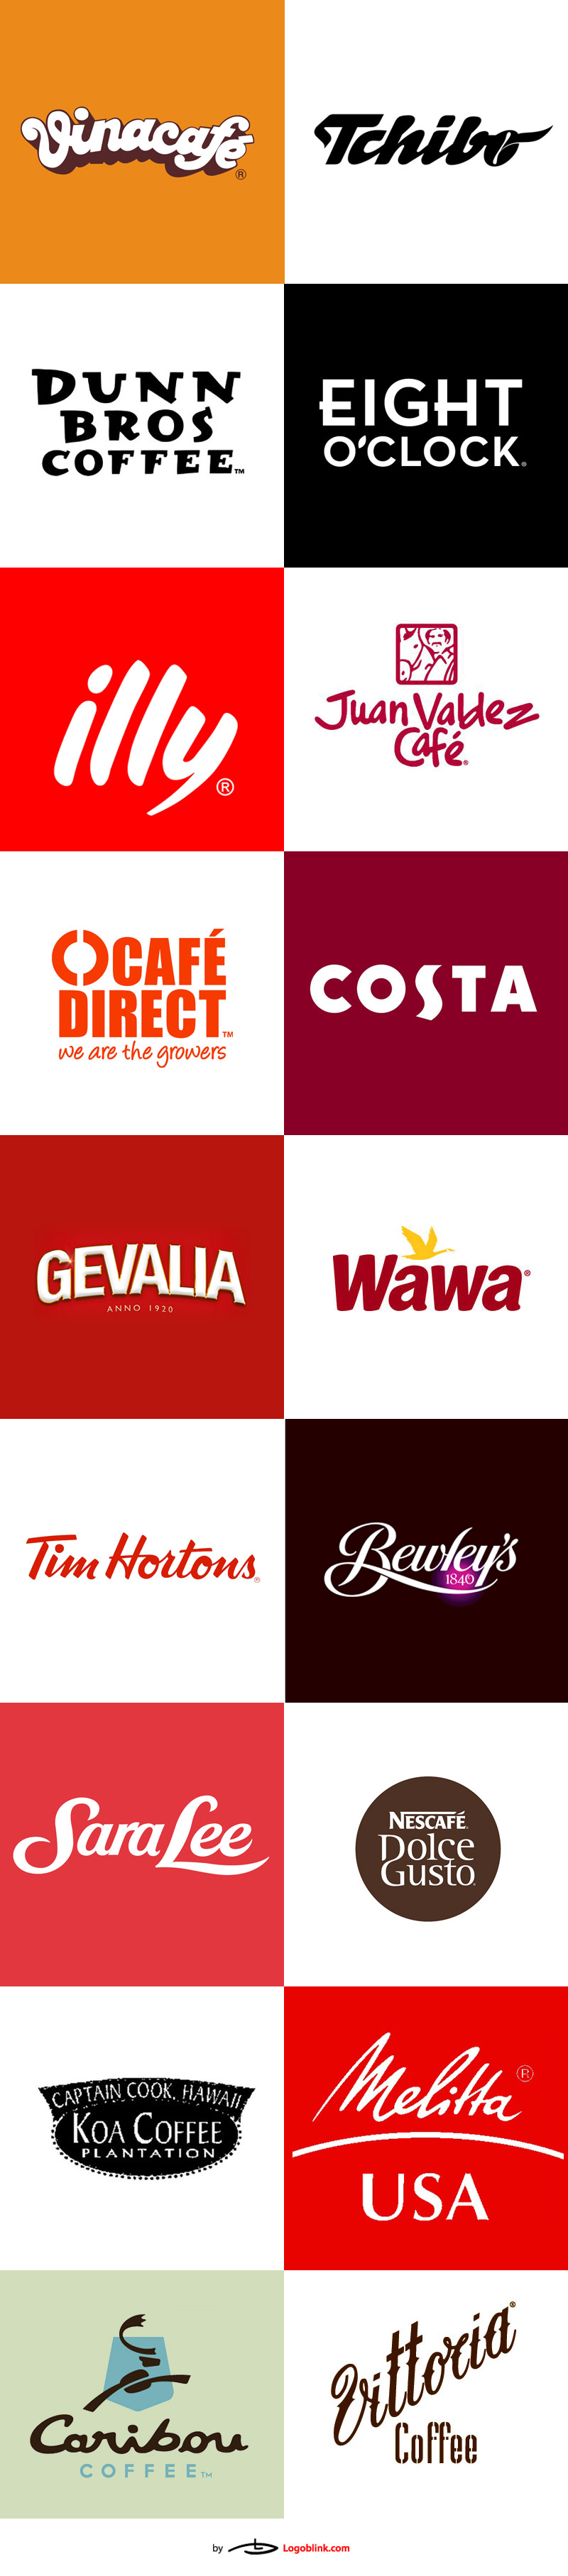 world famous coffee logos